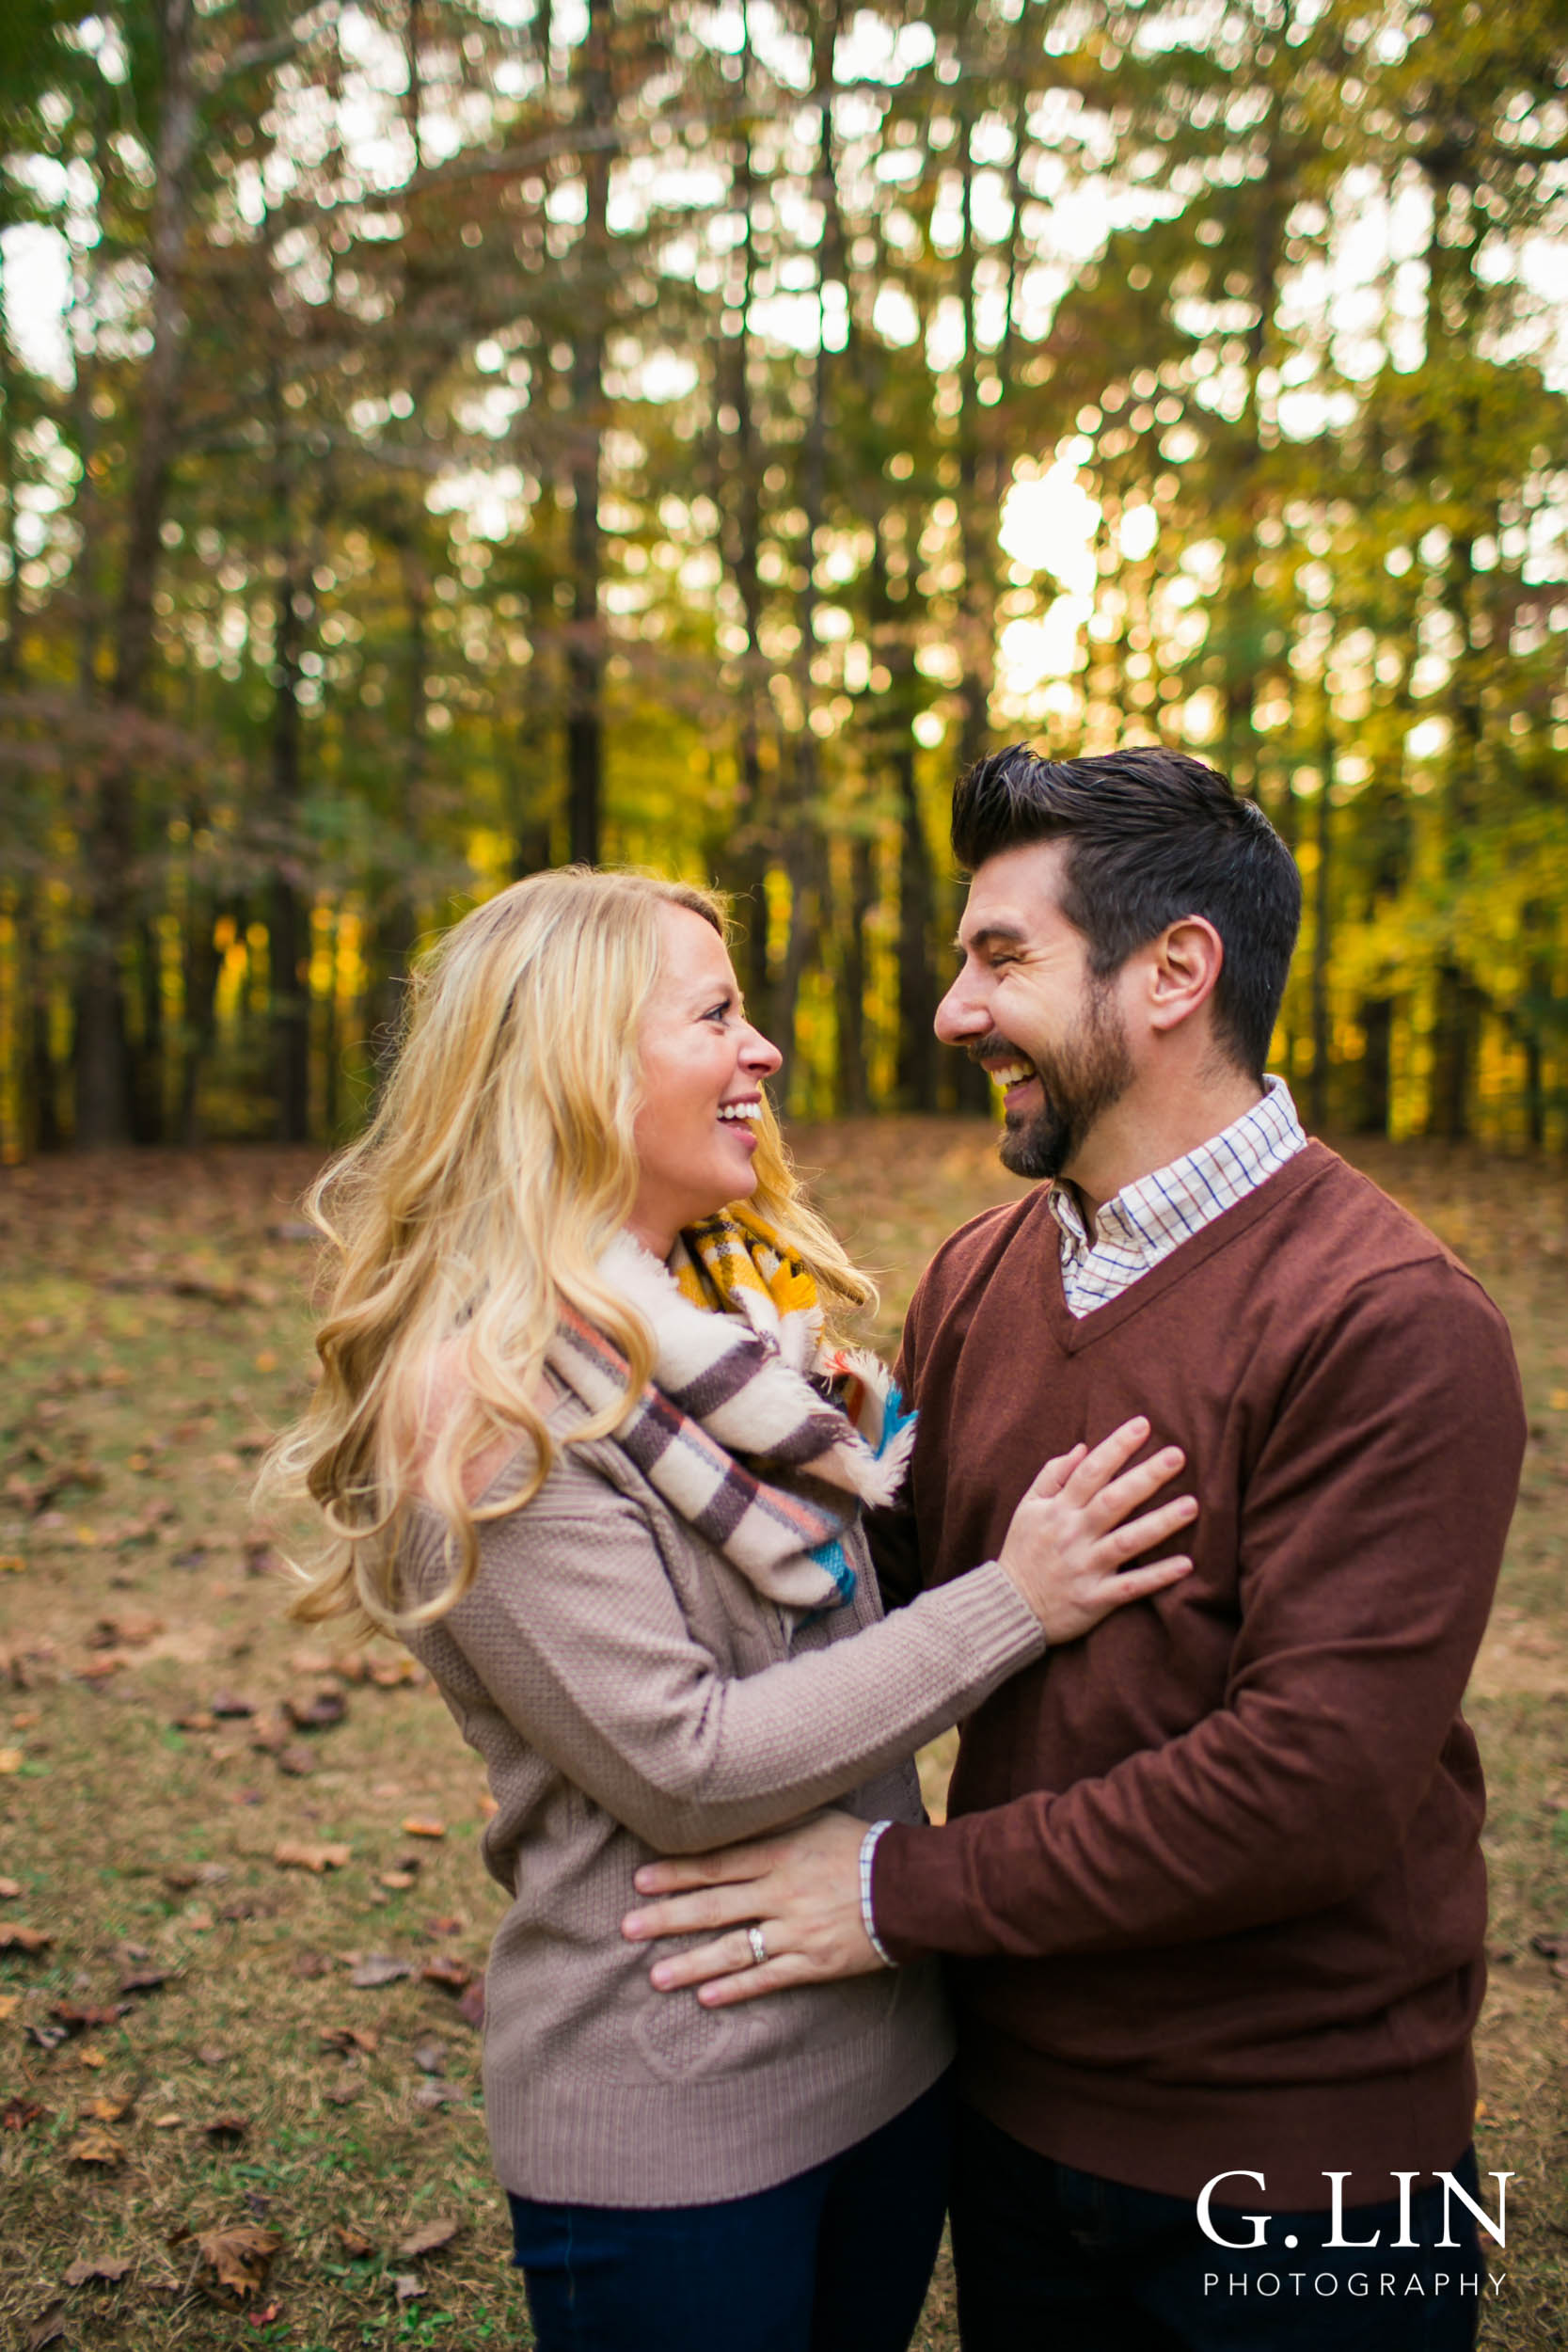 Raleigh Family Photographer | G. Lin Photography | Couple laughing together at Umstead park